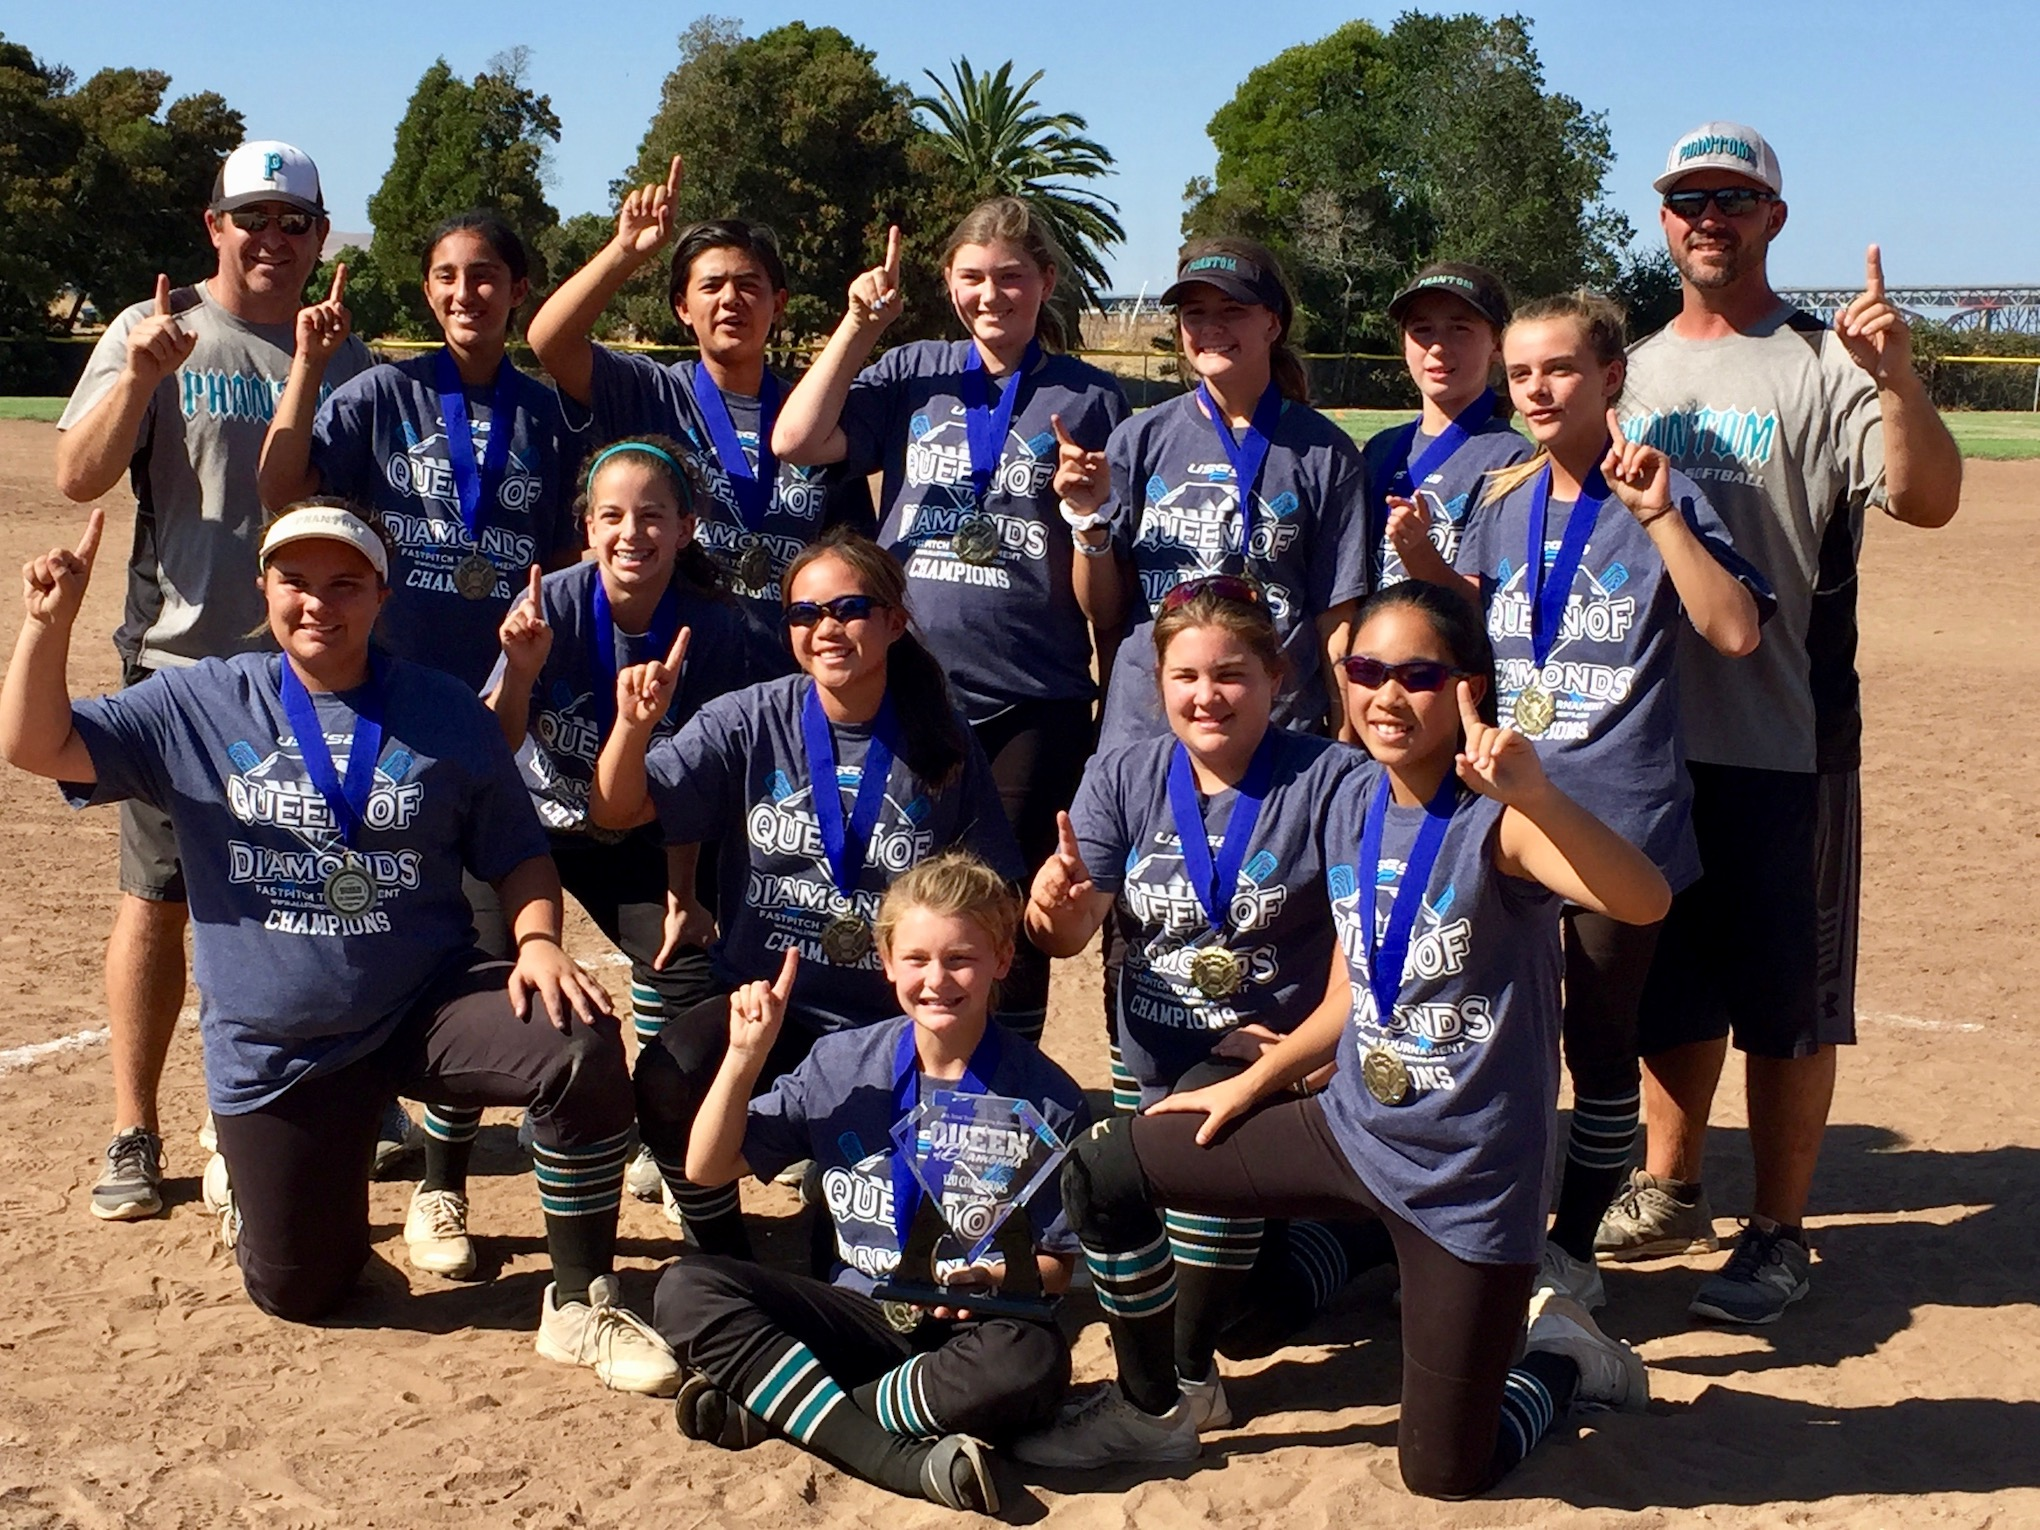 Pleasanton Girls Softball League